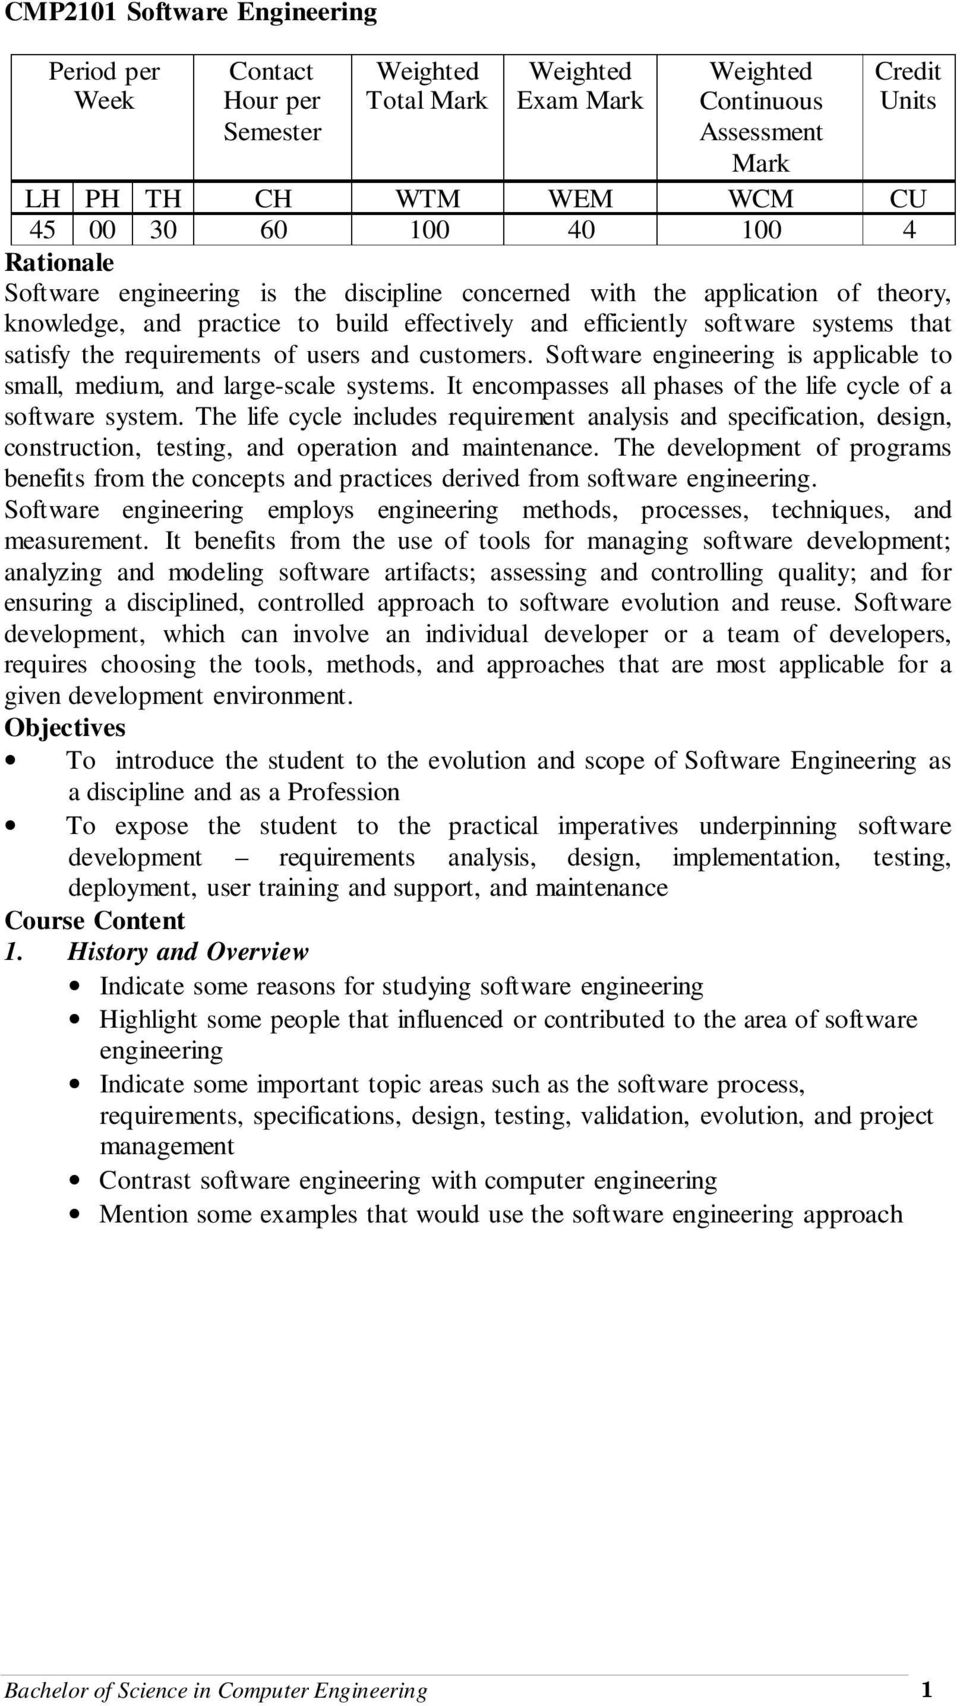 and customers. Software engineering is applicable to small, medium, and large-scale systems. It encompasses all phases of the life cycle of a software system.